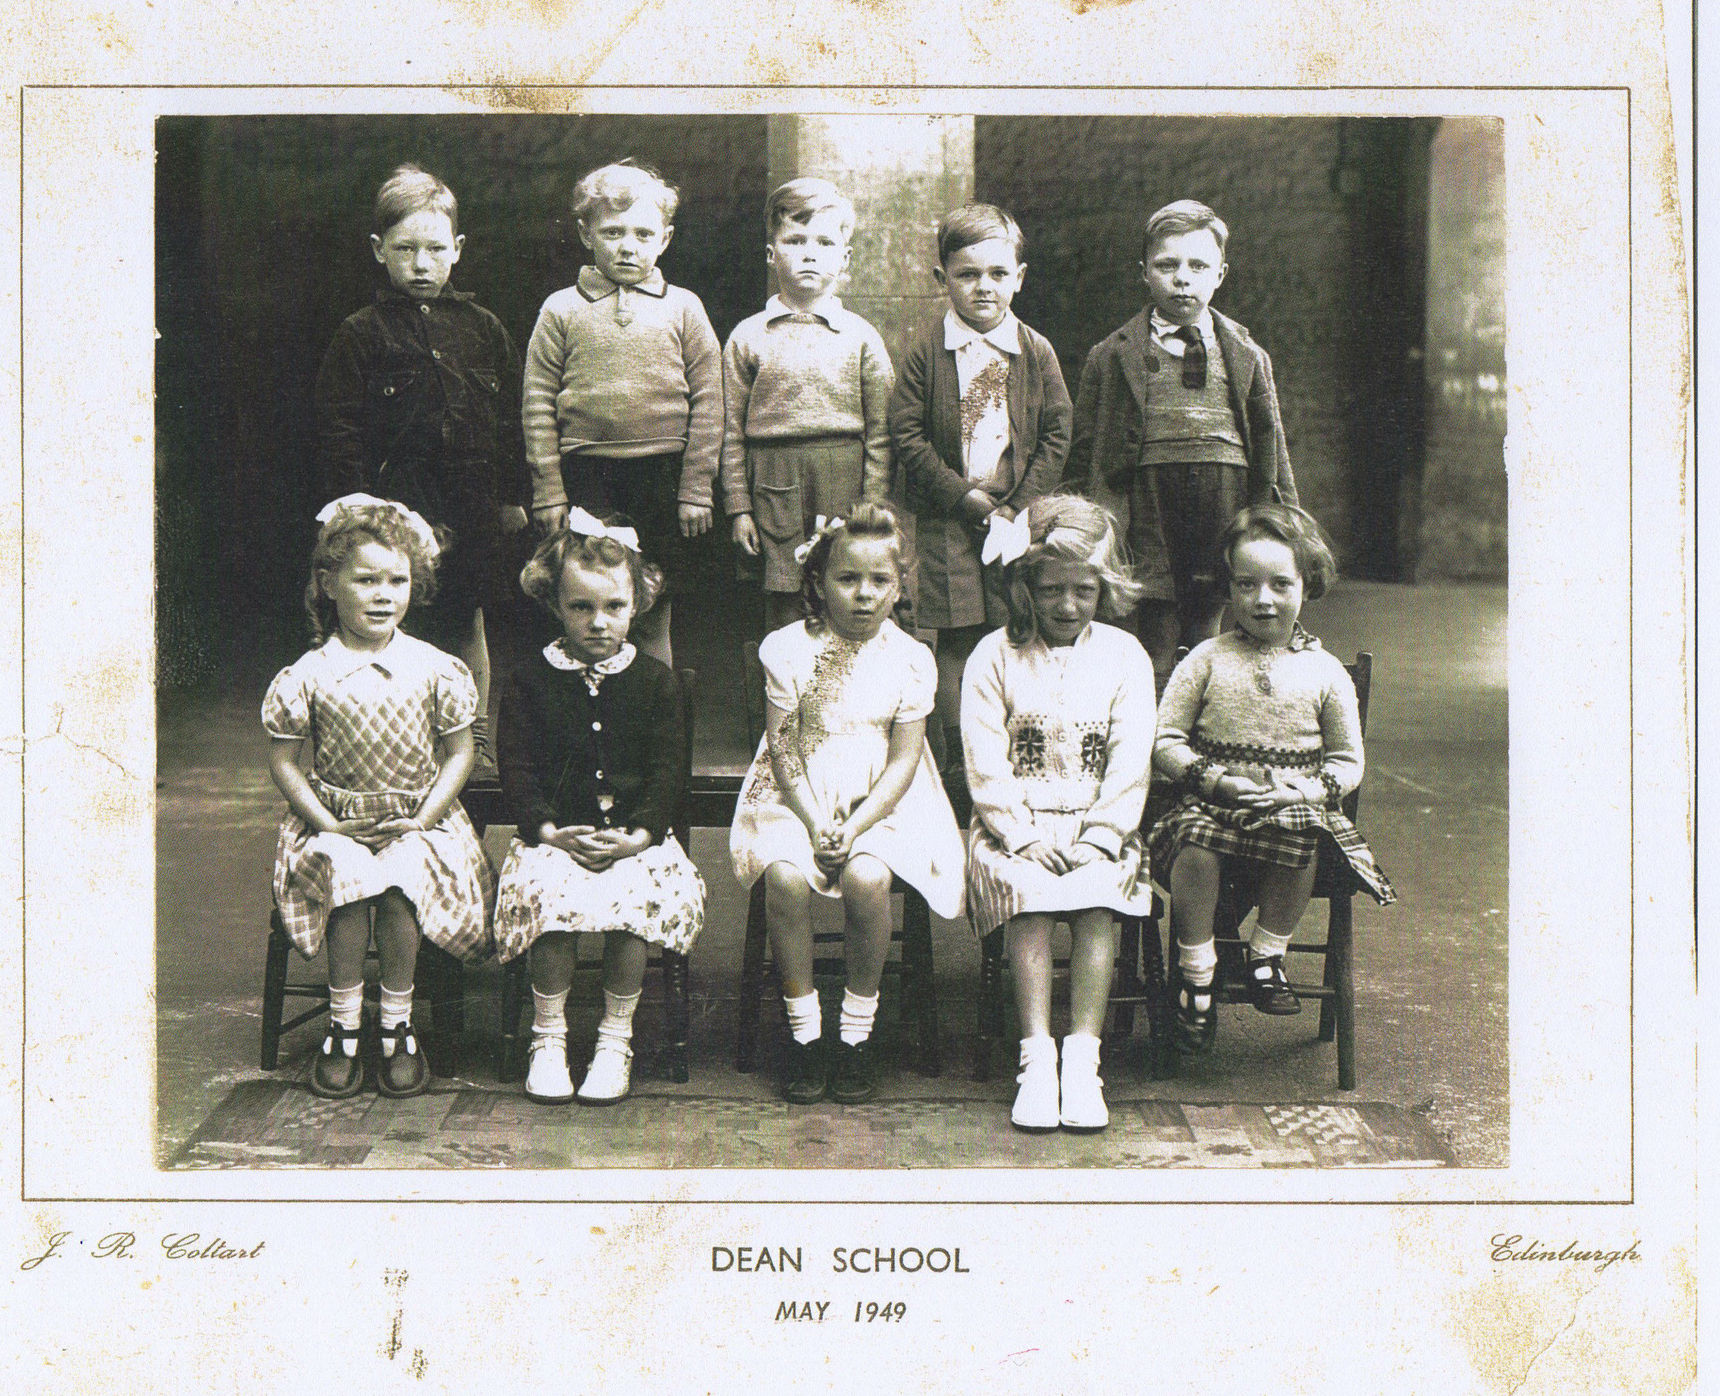 Thats Me in the front row second from the left in the Dean School Class Photo